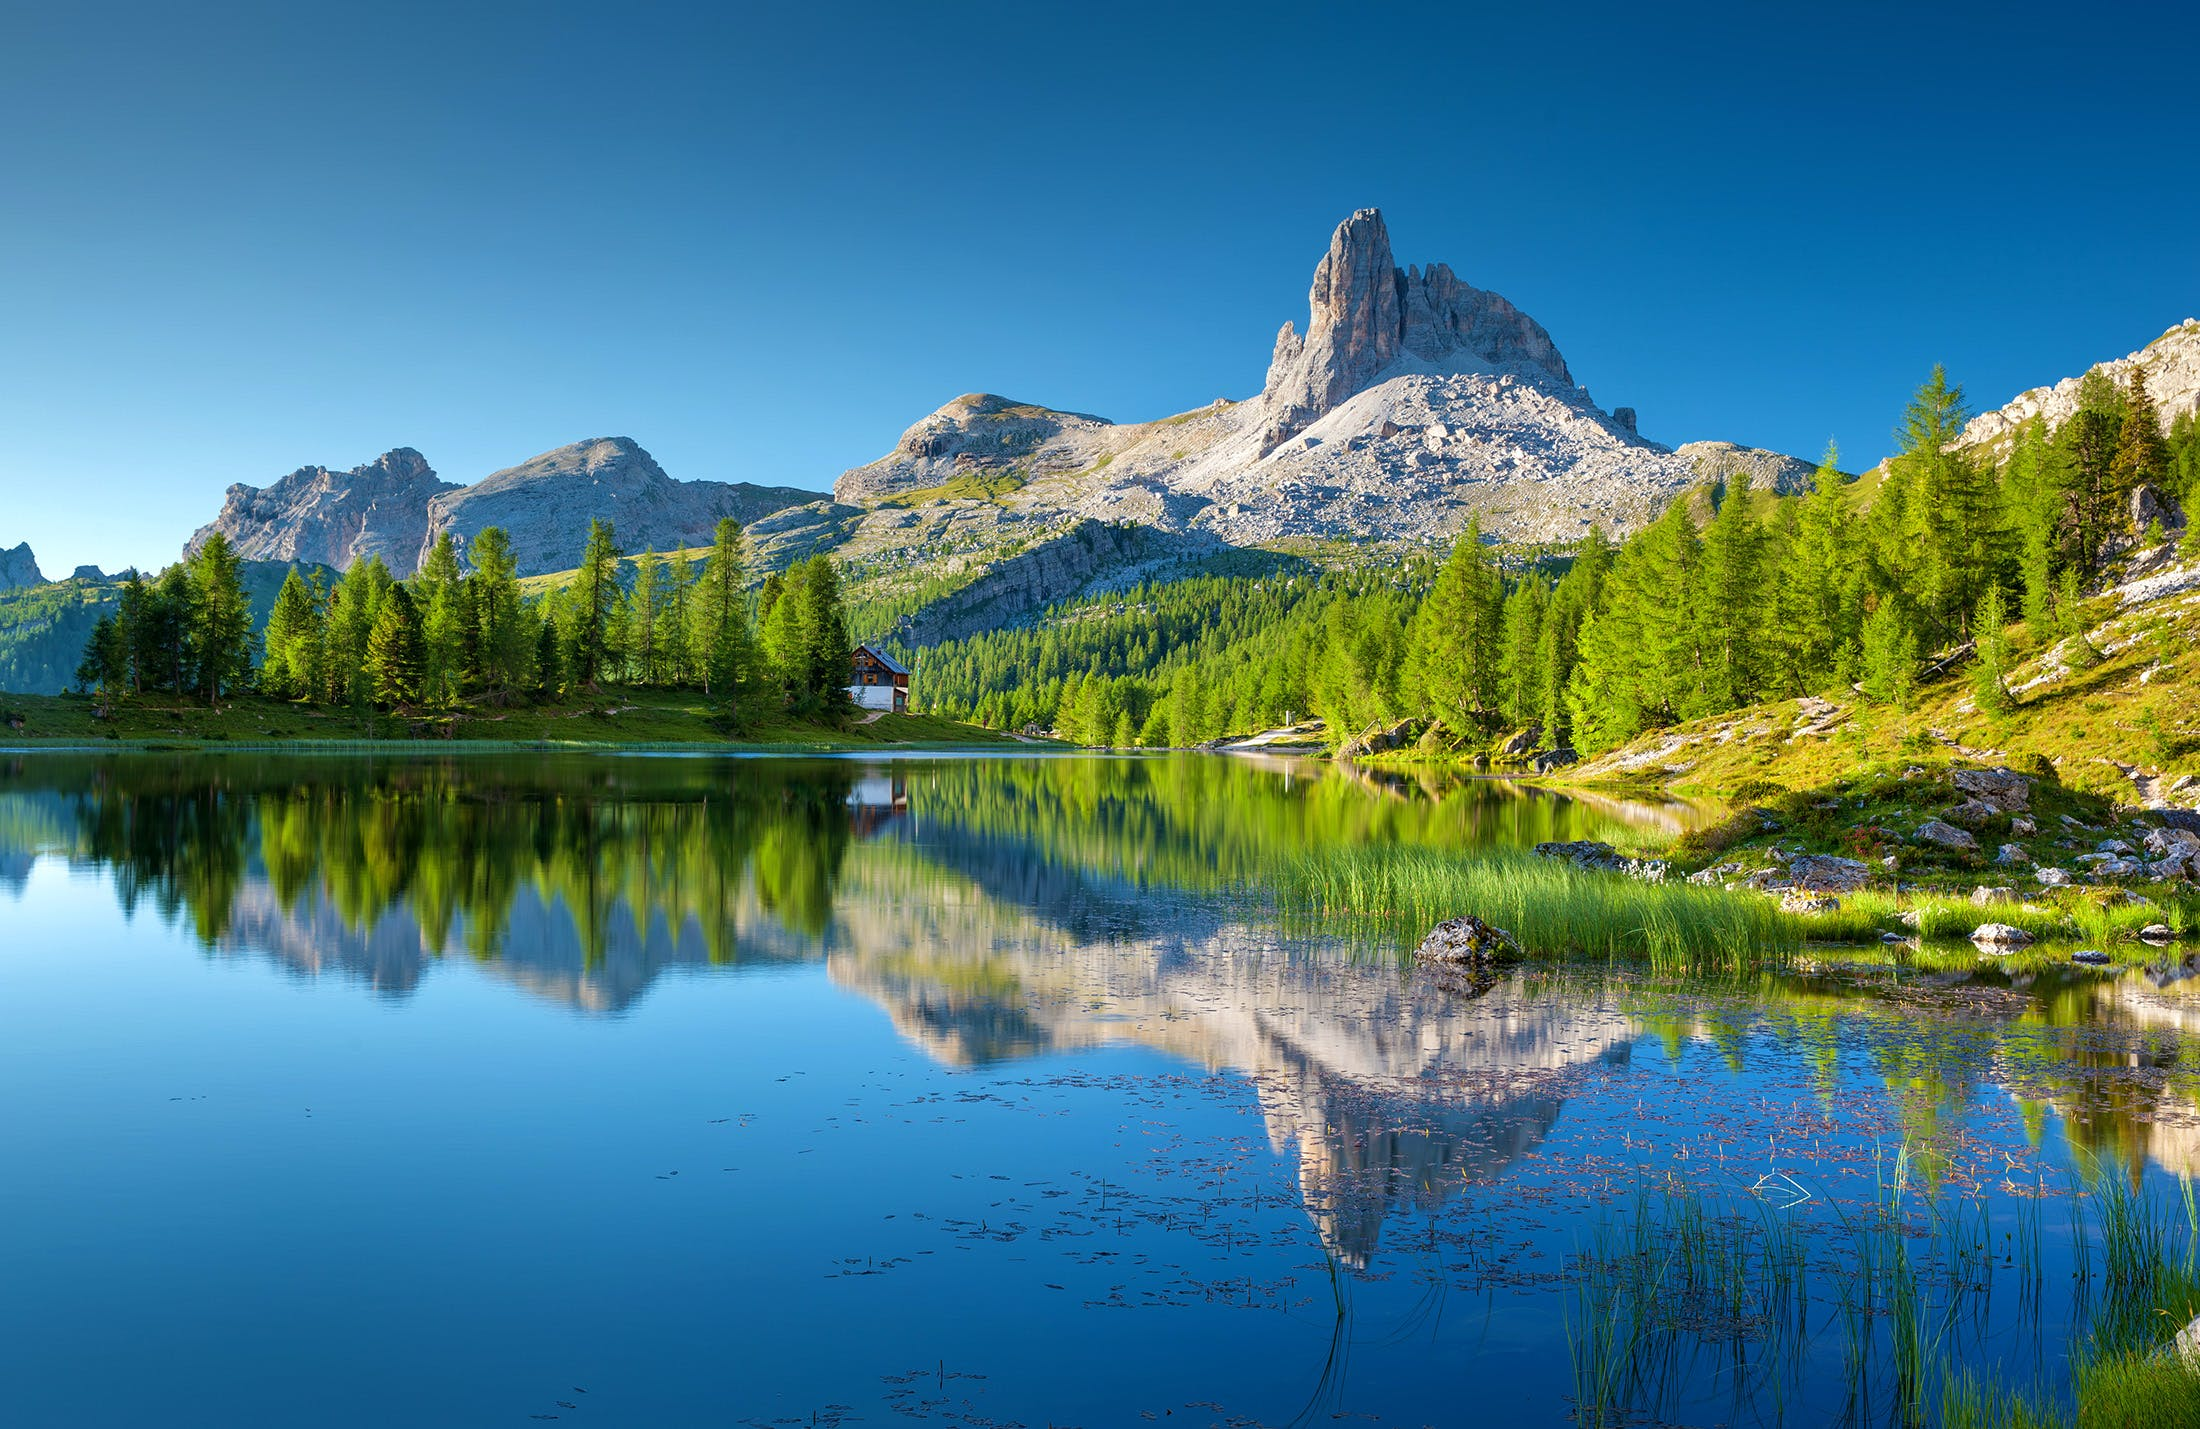 Landscape Photography of White Mountain